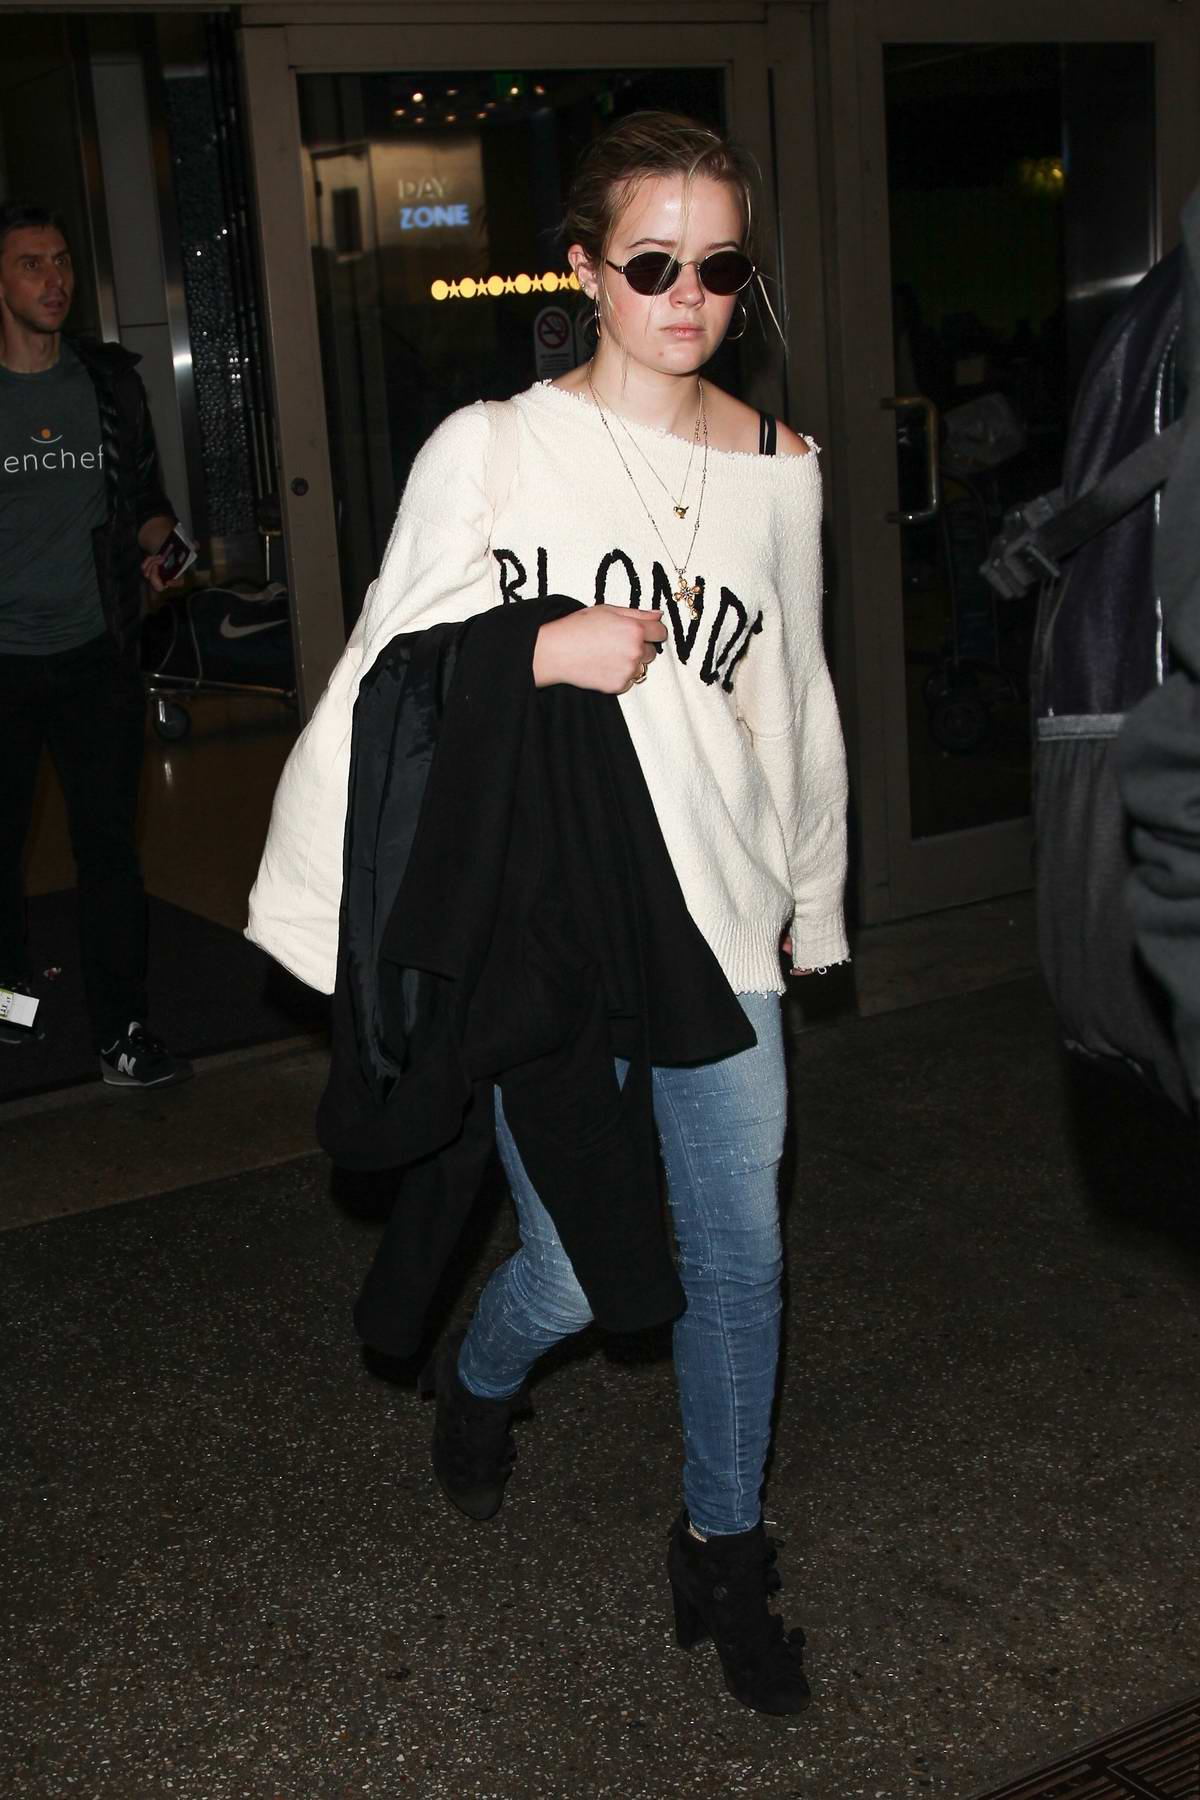 Ava Phillippe with her step-father Jim Toth at LAX International airport arrivals in Los Angeles